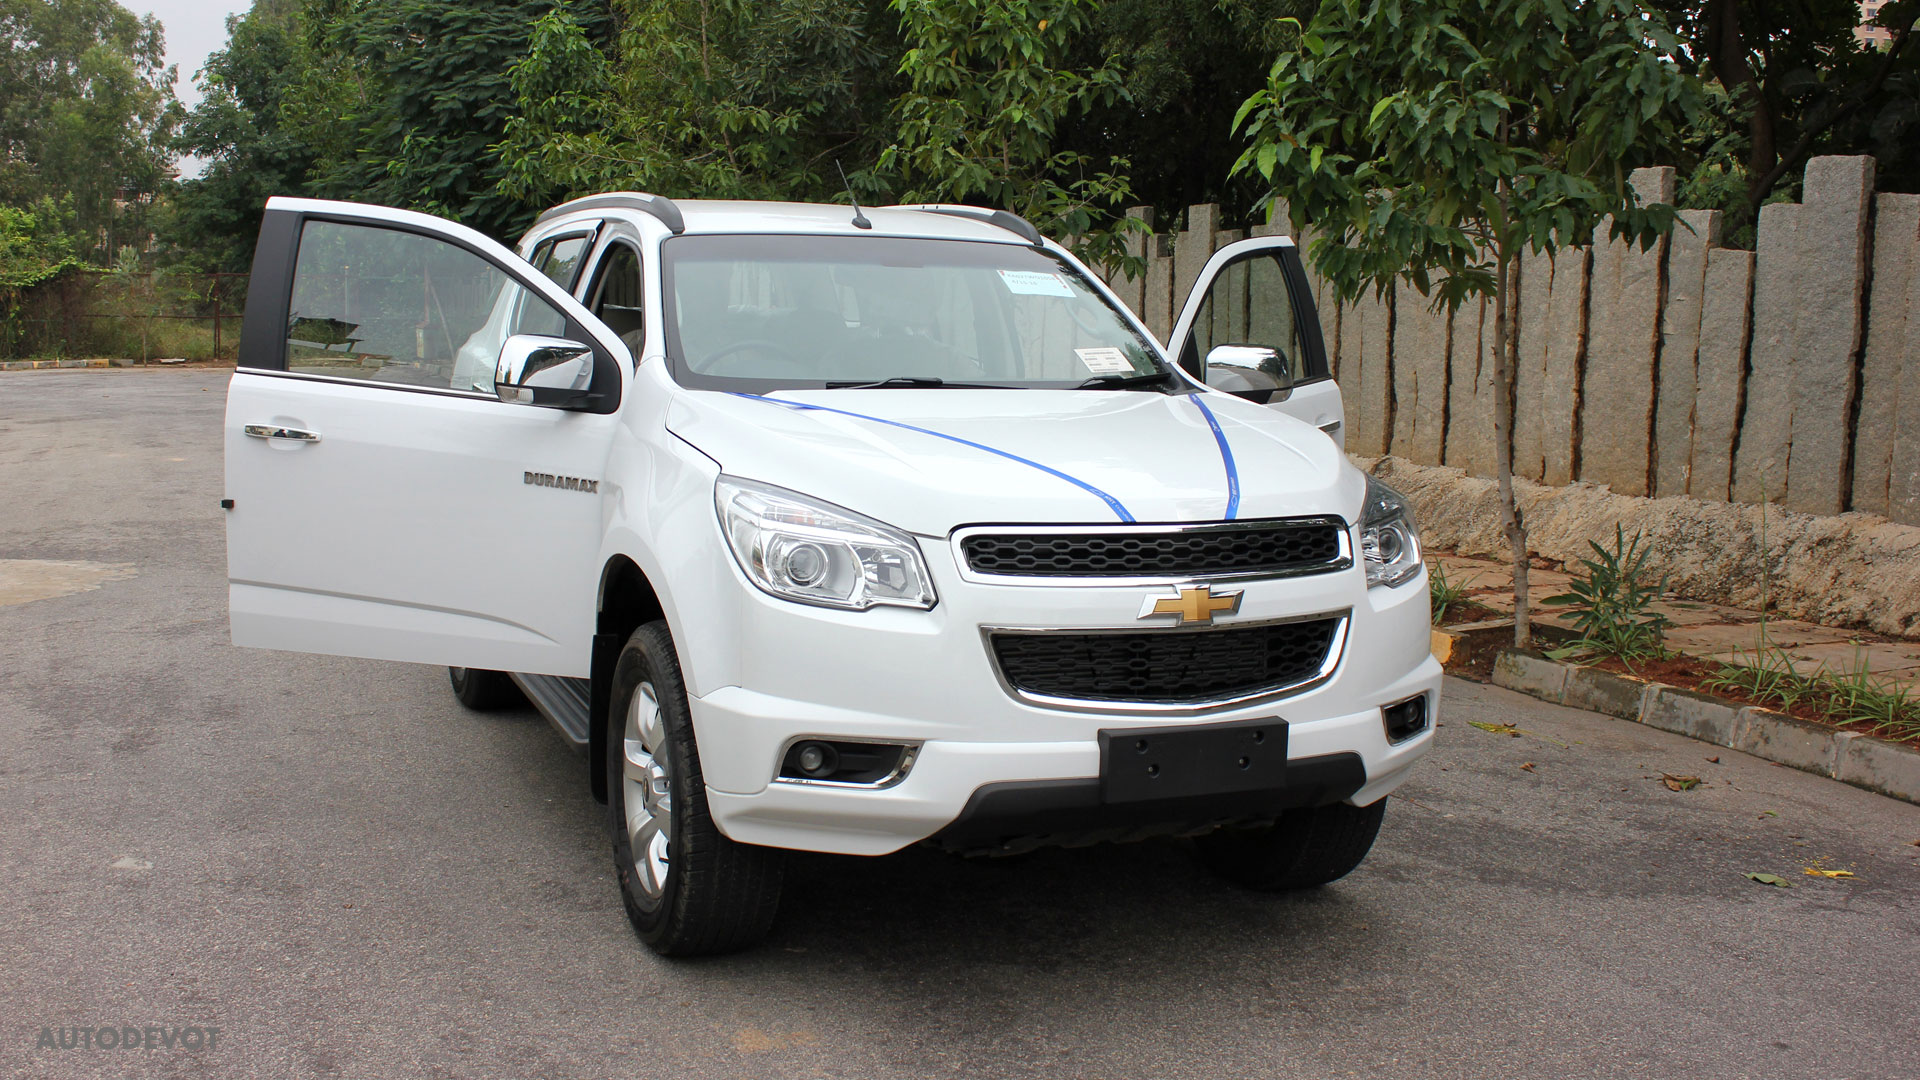 Chevrolet Trailblazer 2015 >> 2015 Chevrolet Trailblazer Gallery Autodevot